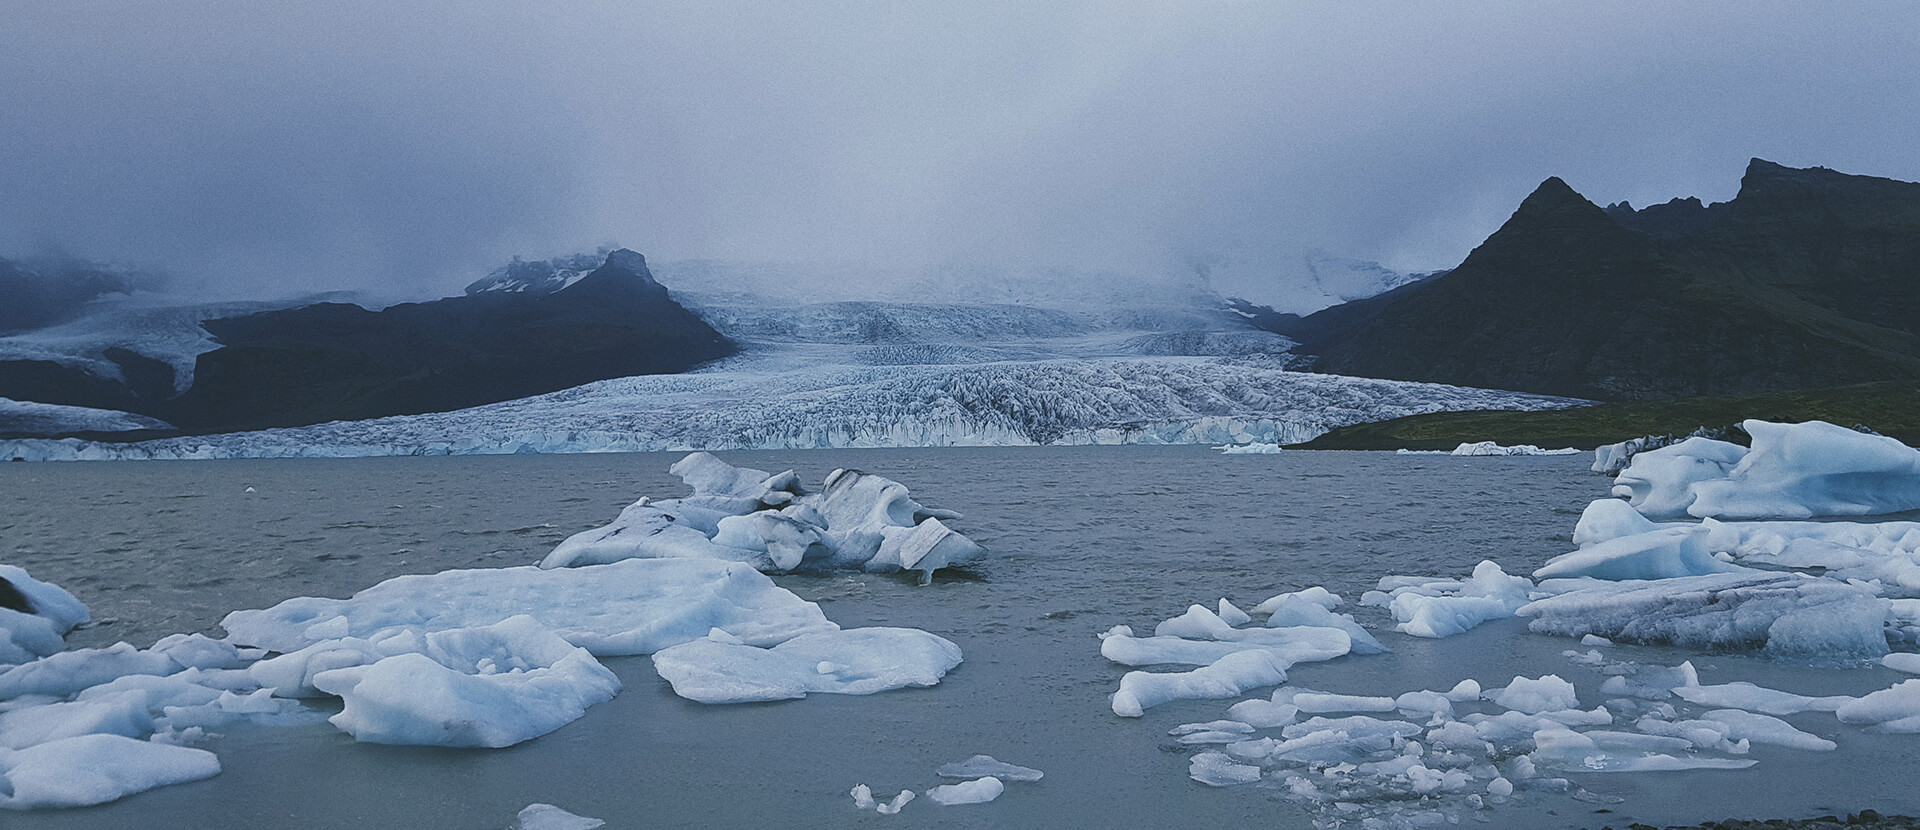 UN panel signals Red Alert on 'BLUE PLANET' due to Climate Change